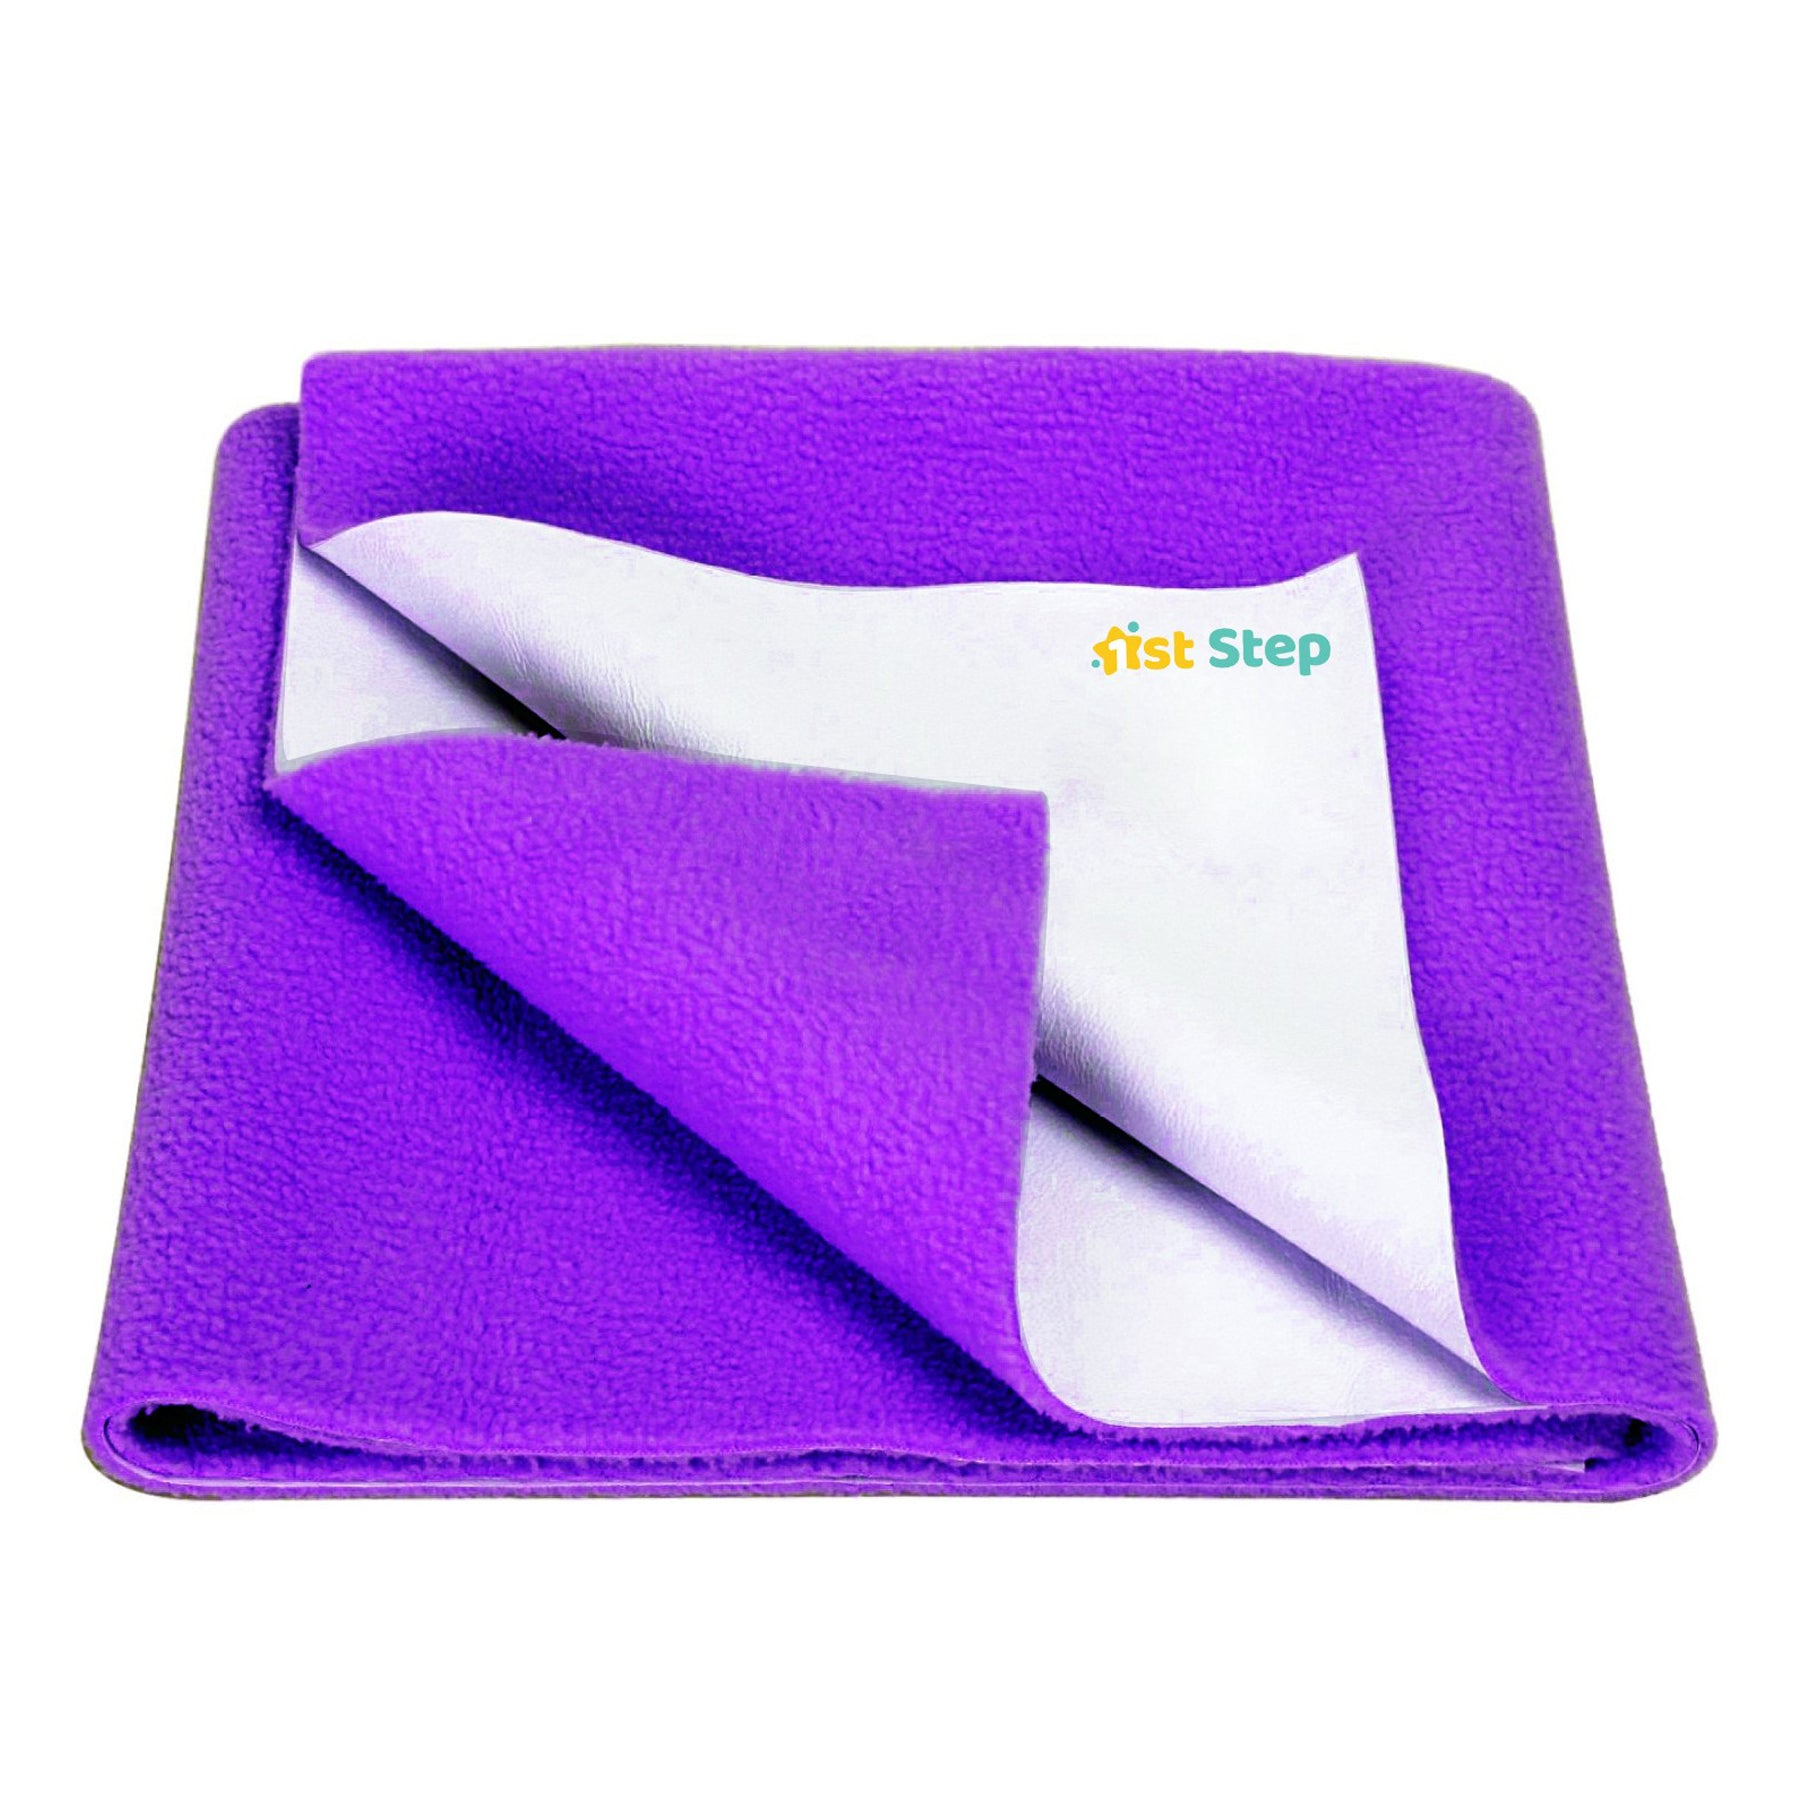 1st Step Supa - Dry Extra Absorbent Dry Sheet/Bed Protector/Mattress Protector (Purple, Large(100 * 140 cm))